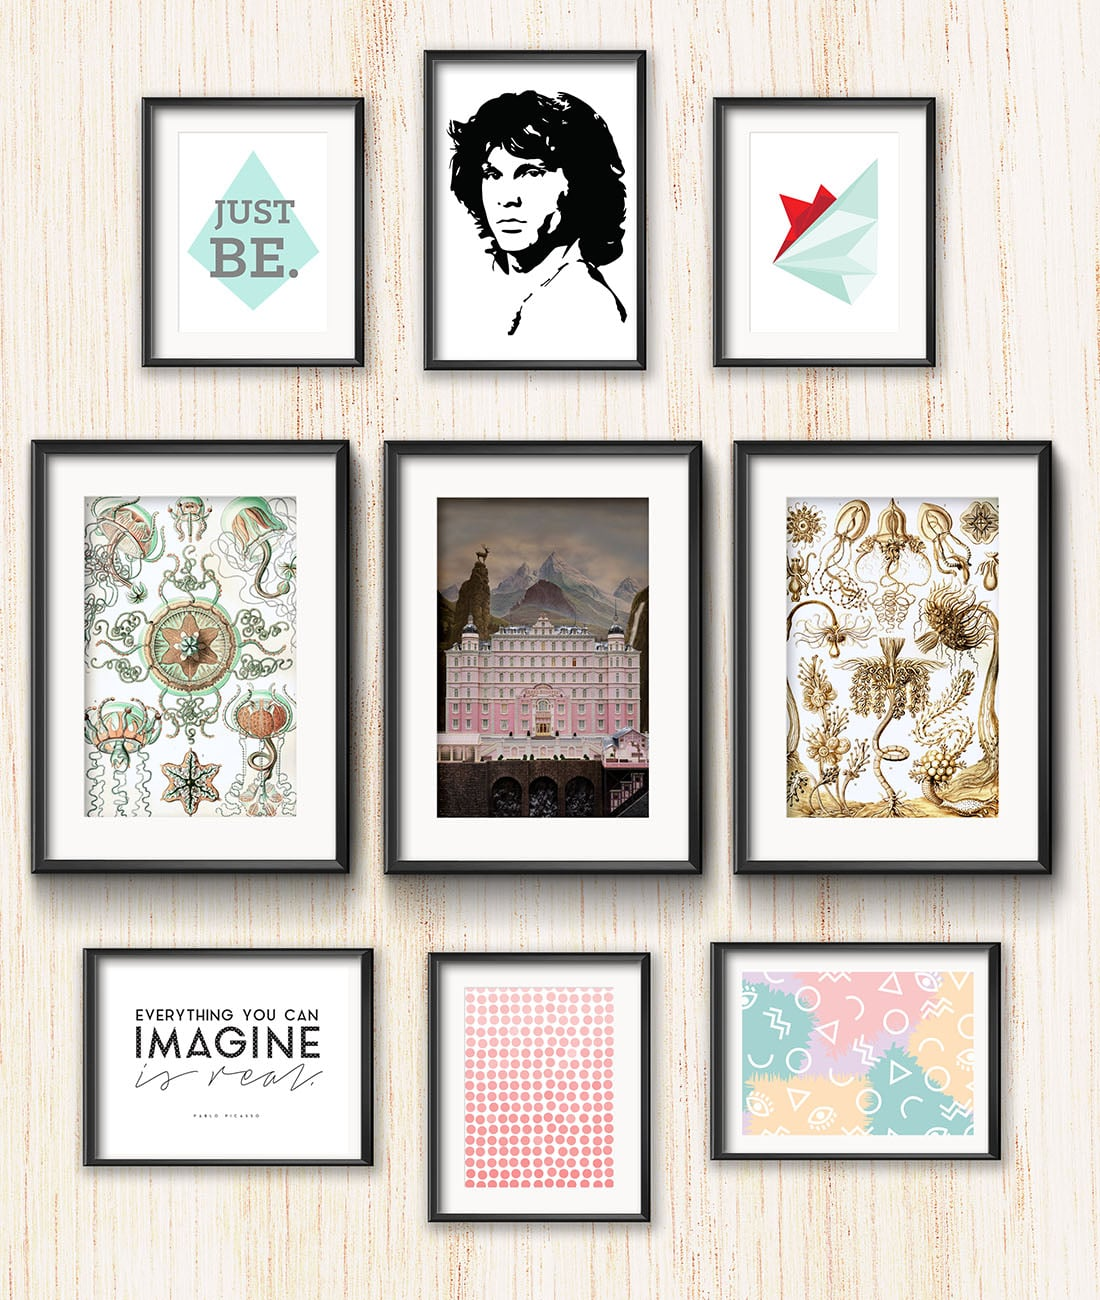 California Beach Vibe Gallery Wall • Frame Game isanoccasional series in which I take readers' gallery wall requests and find art that fits their personalities •Little Gold Pixel